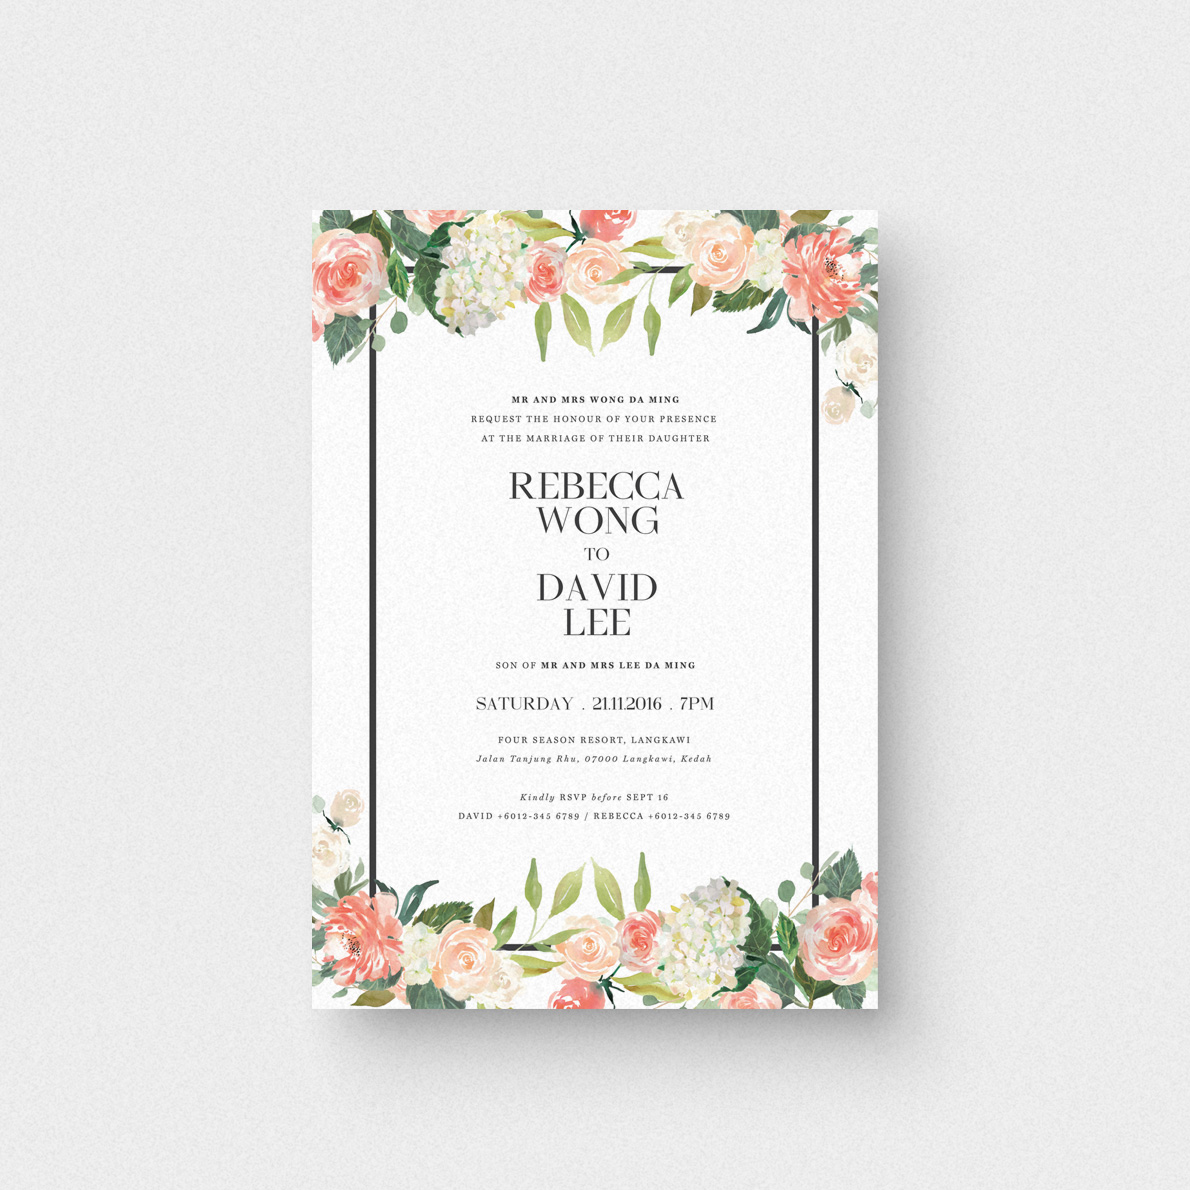 Where To Buy Wedding Invitation Paper: Floral Letter I Invitation Card